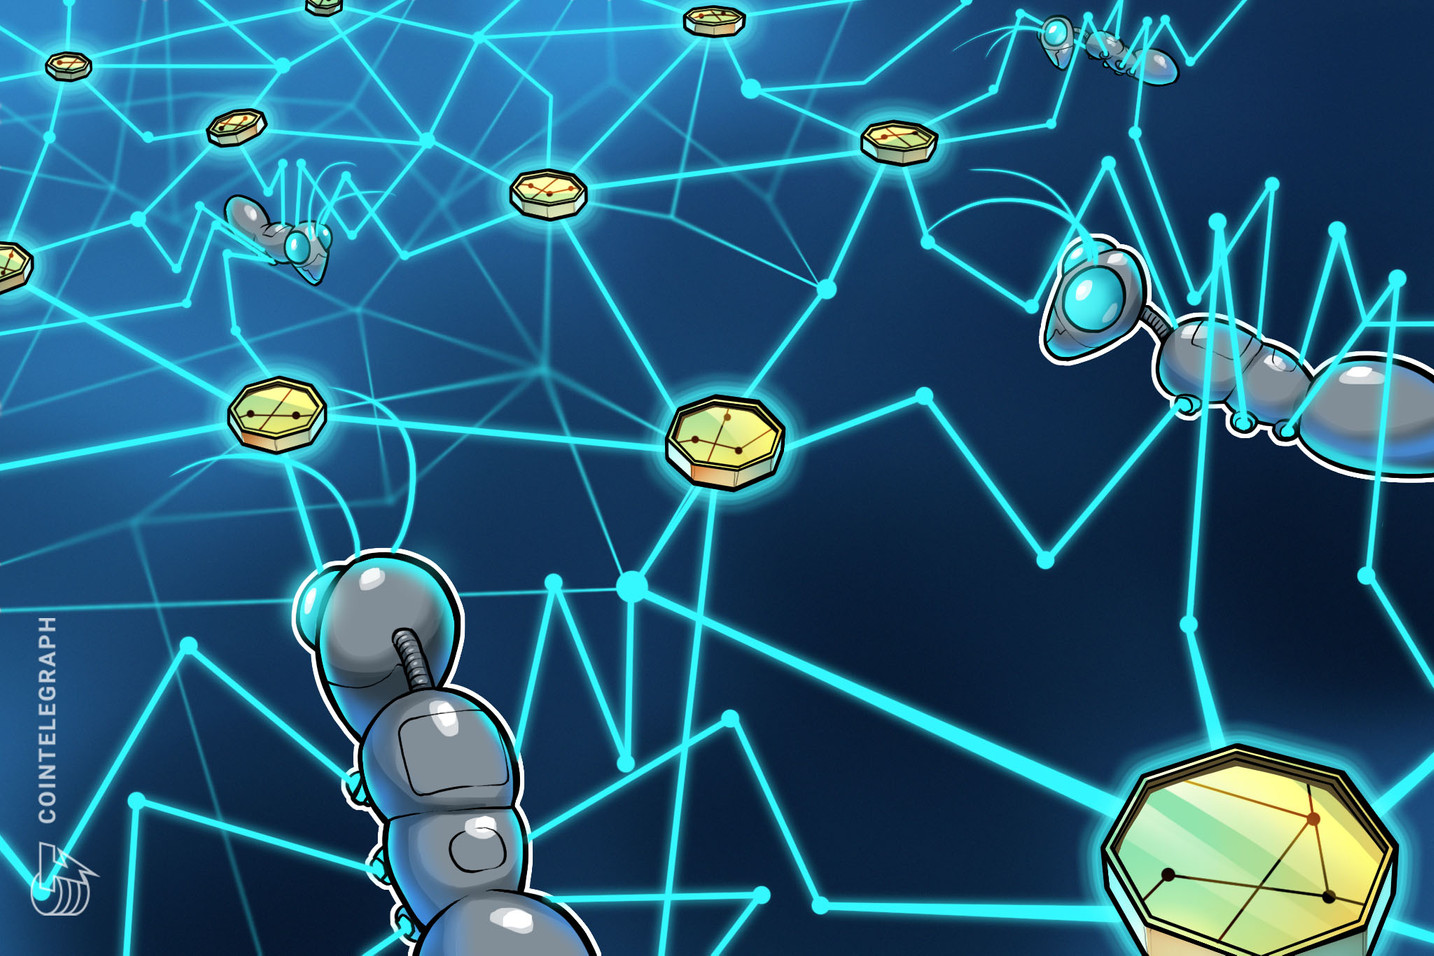 Cosmos launches Inter-Blockchain Communication to enable cross-chain DeFi